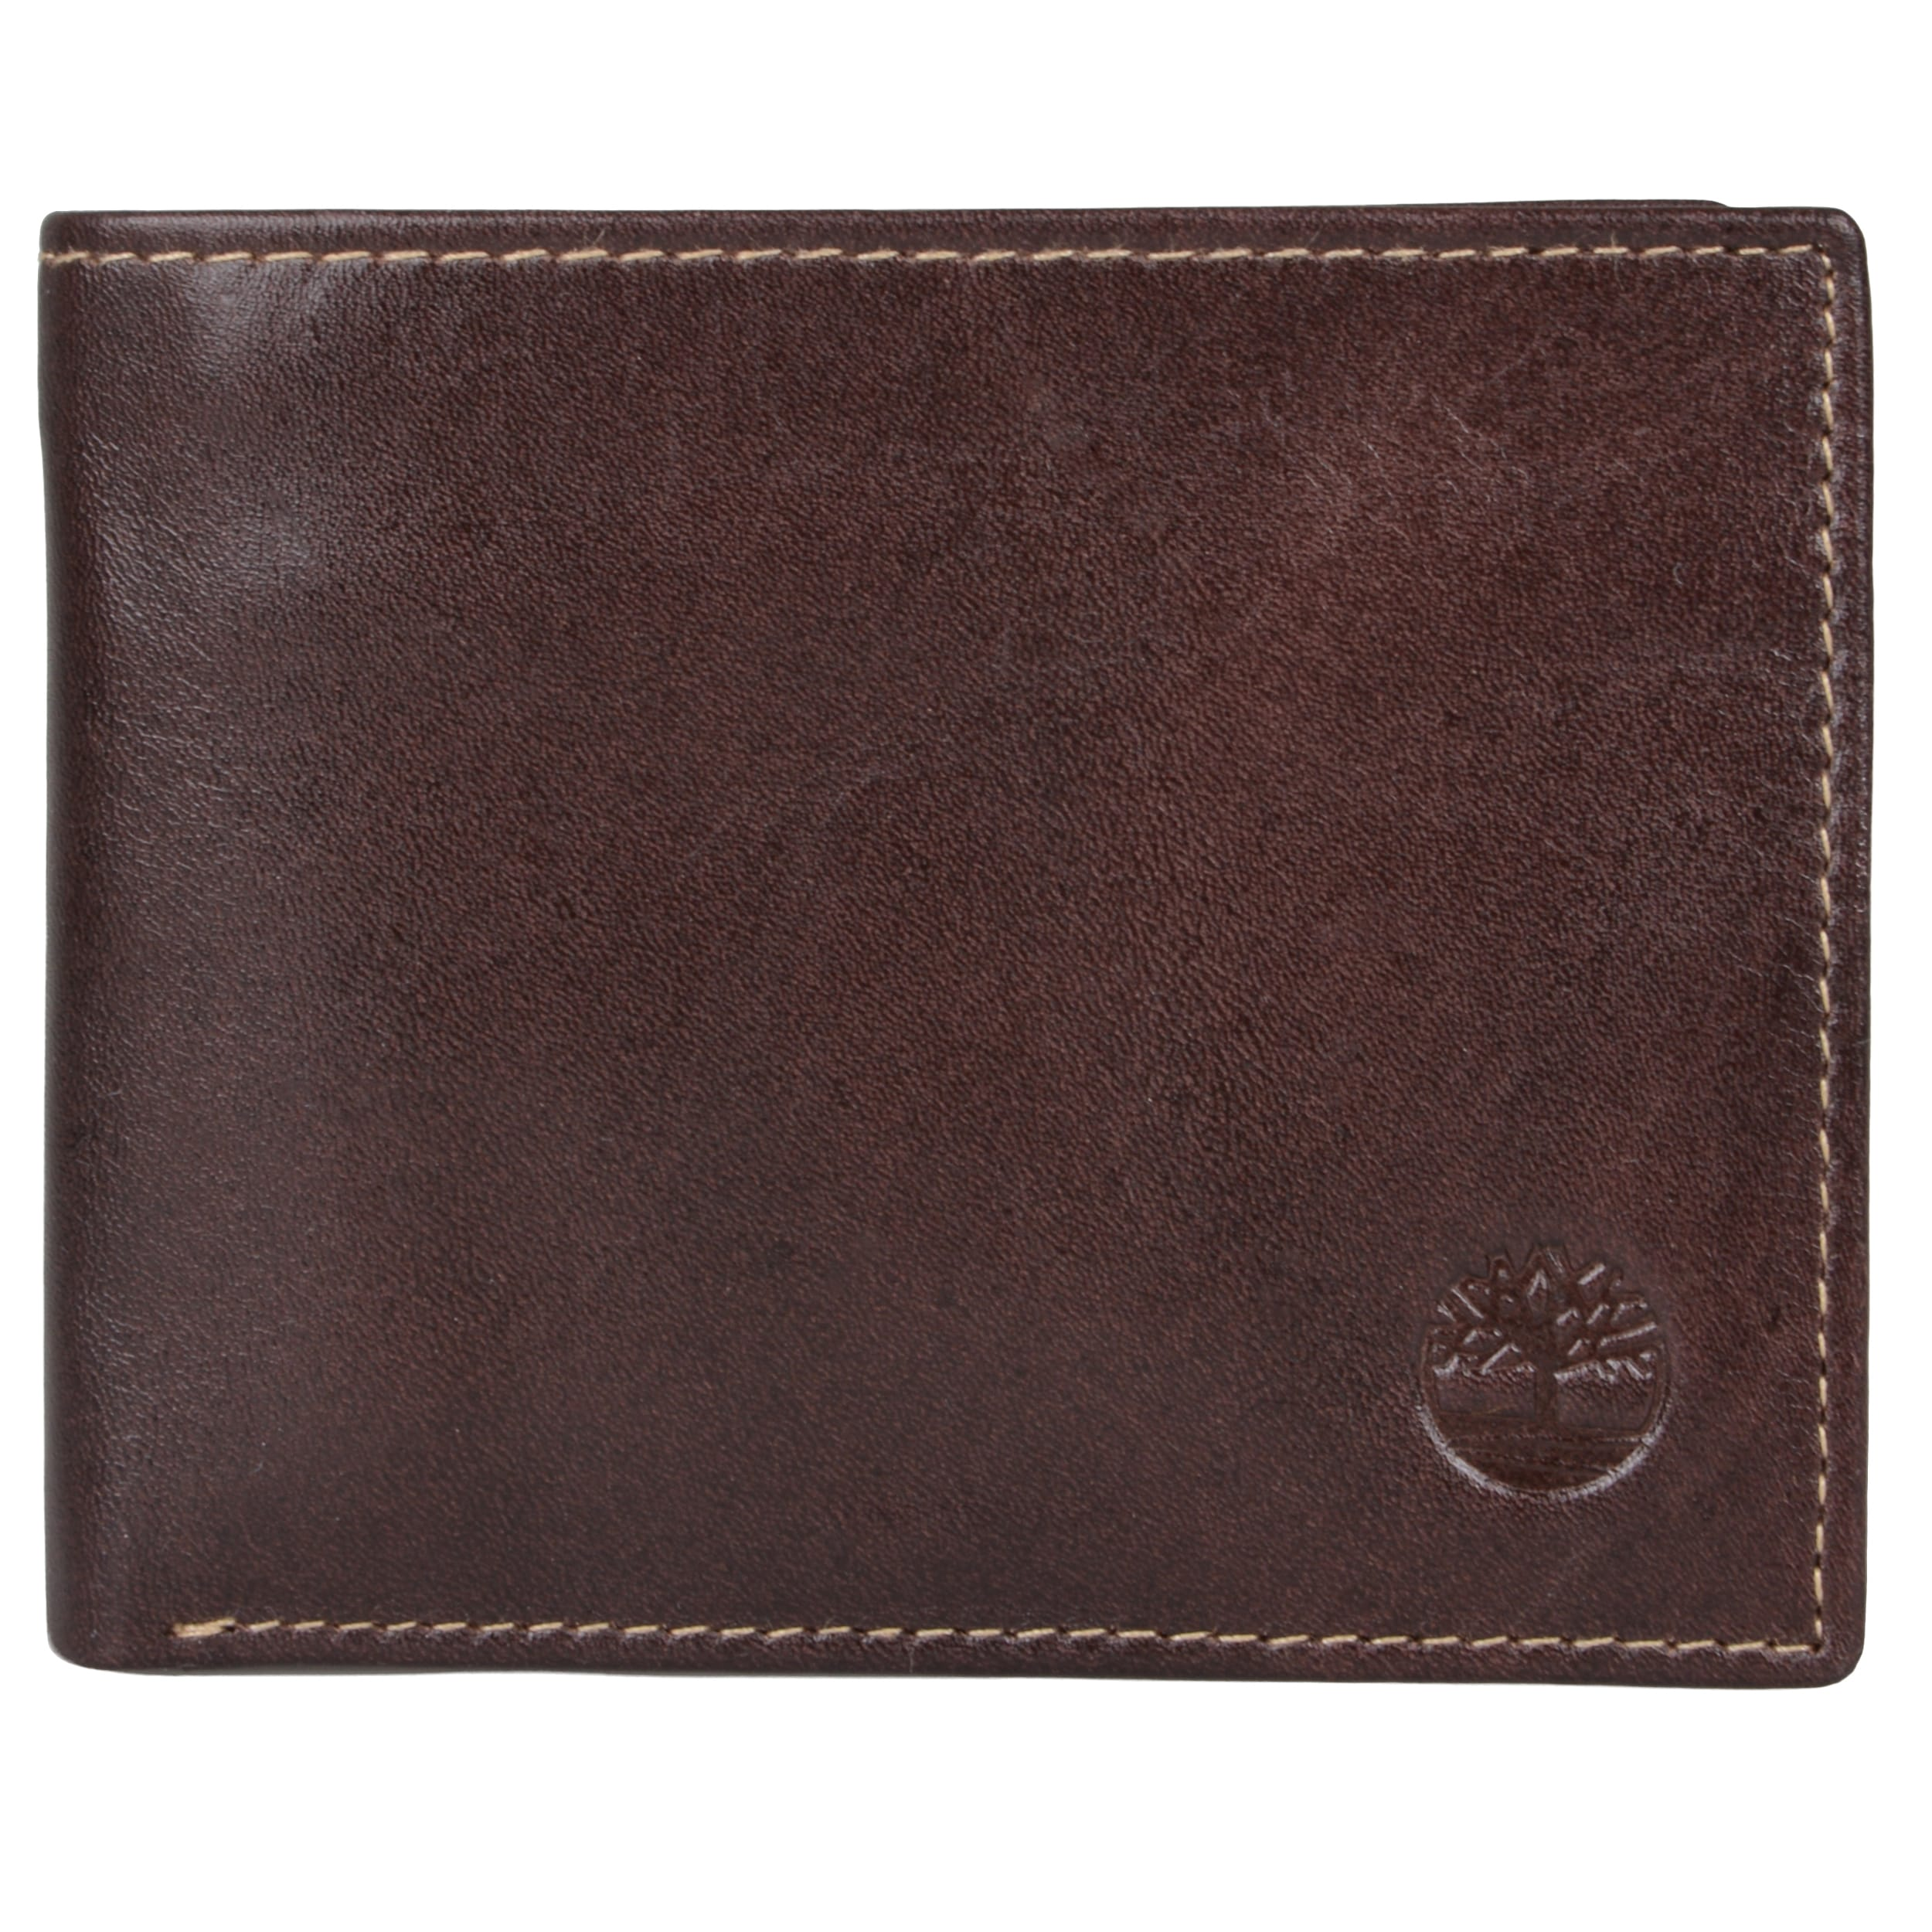 Timberland Men's Genuine Leather Bifold Passcase Wallet with One Cash Pocket